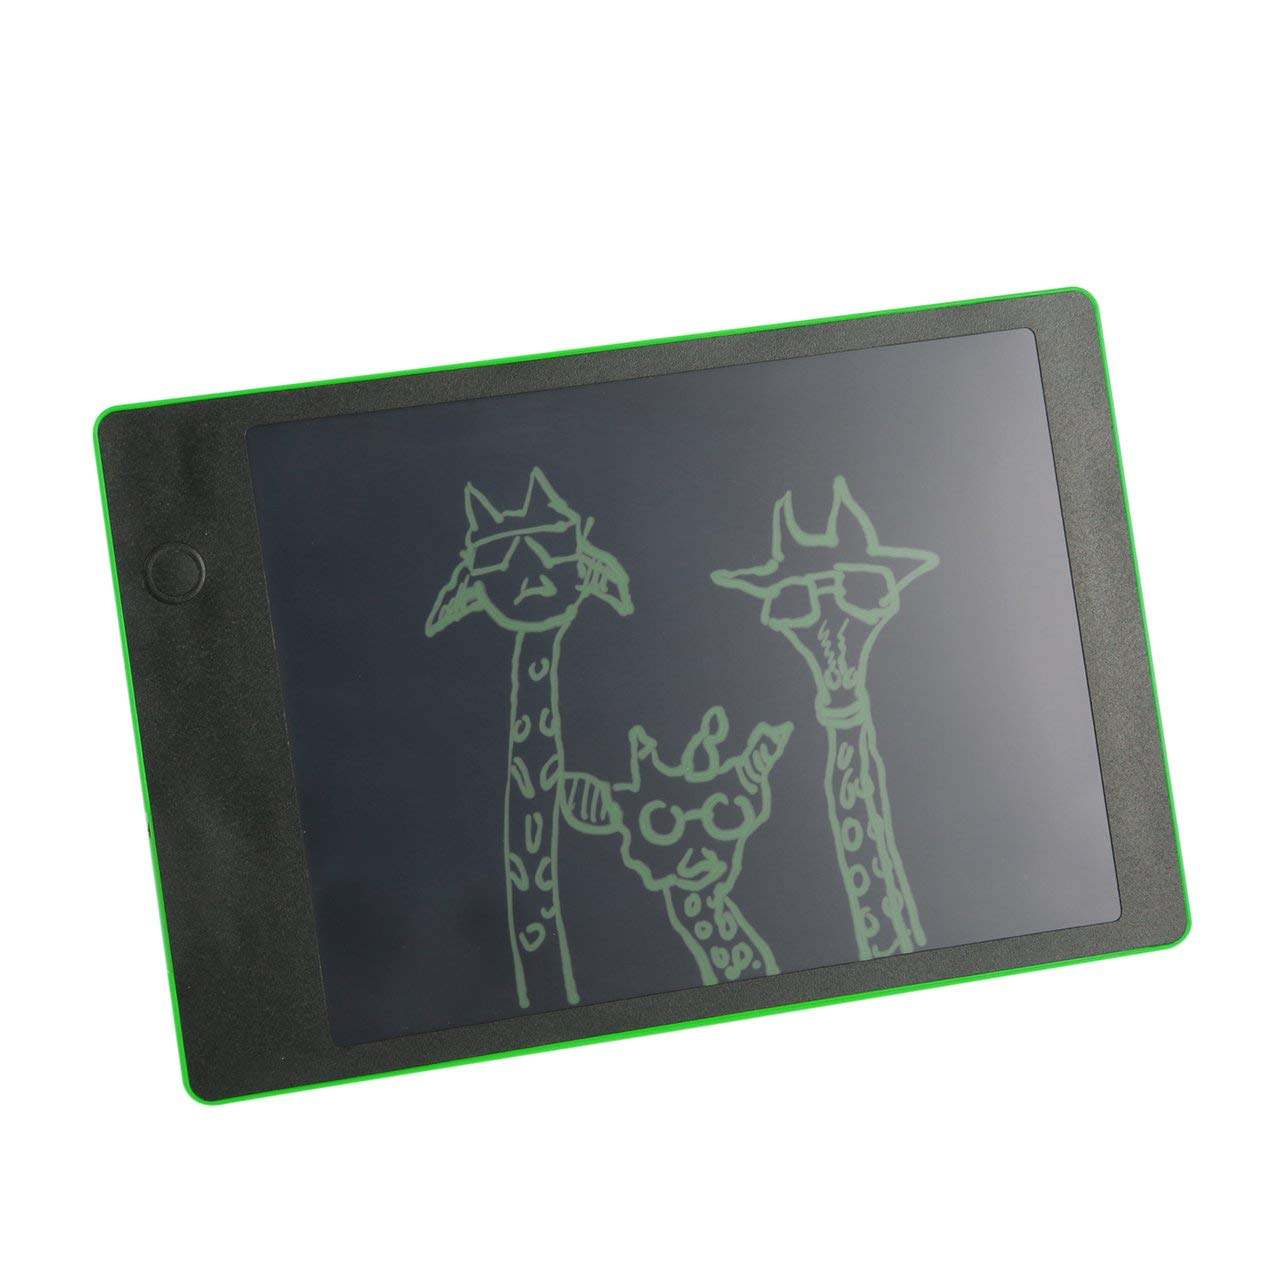 7.5 Inch LCD Writing Tablet Electronic Digital Drawing Pad Portable Lightweight Handwriting Board for Note-Taking Painting CP